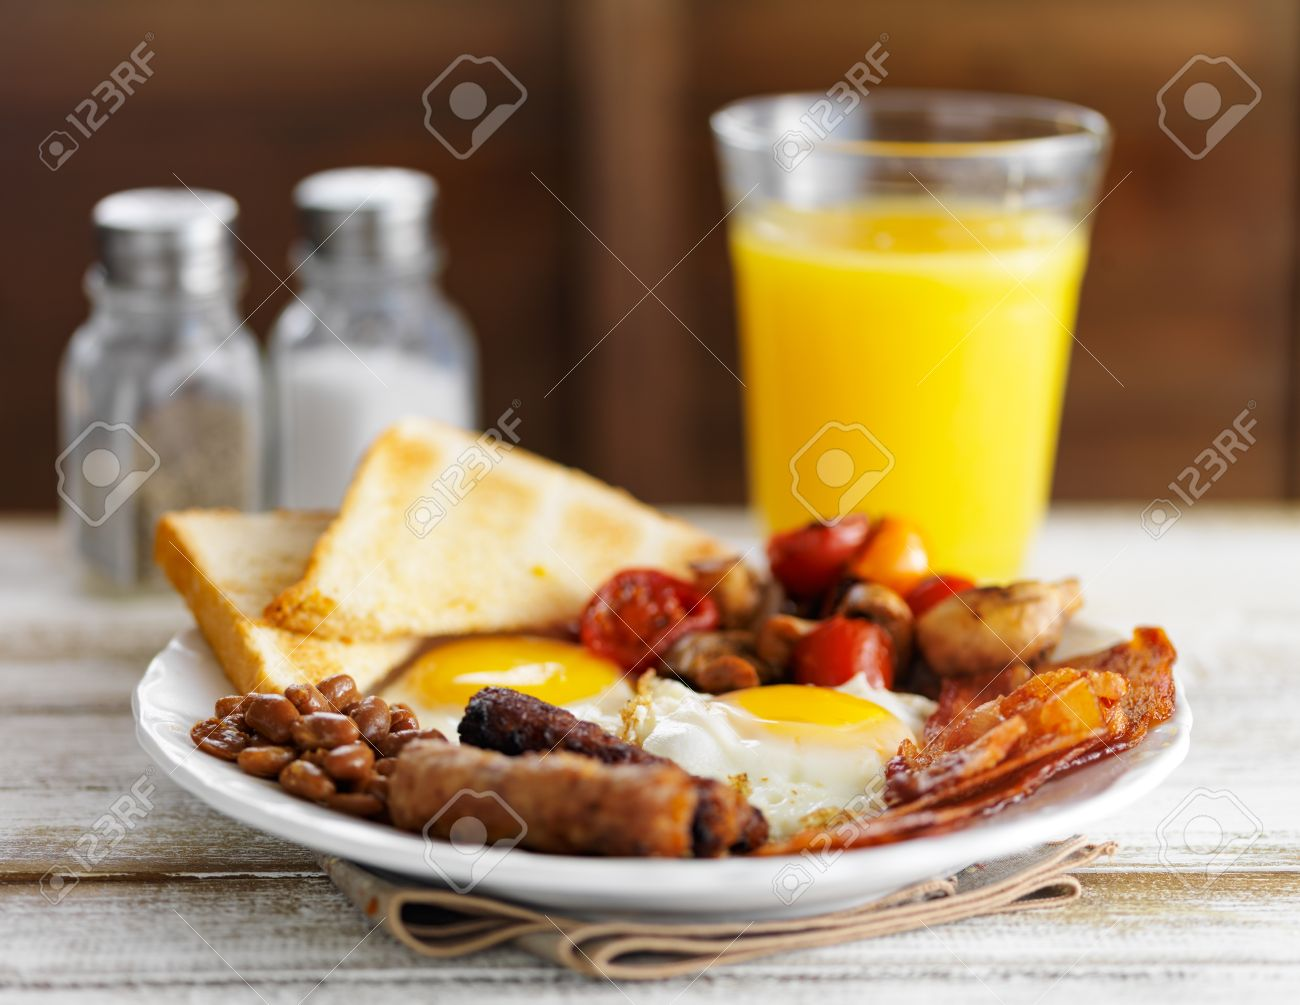 classic english breakfast on rustic table top served with orange juice Stock Photo - 47617887 & Classic English Breakfast On Rustic Table Top Served With Orange ...